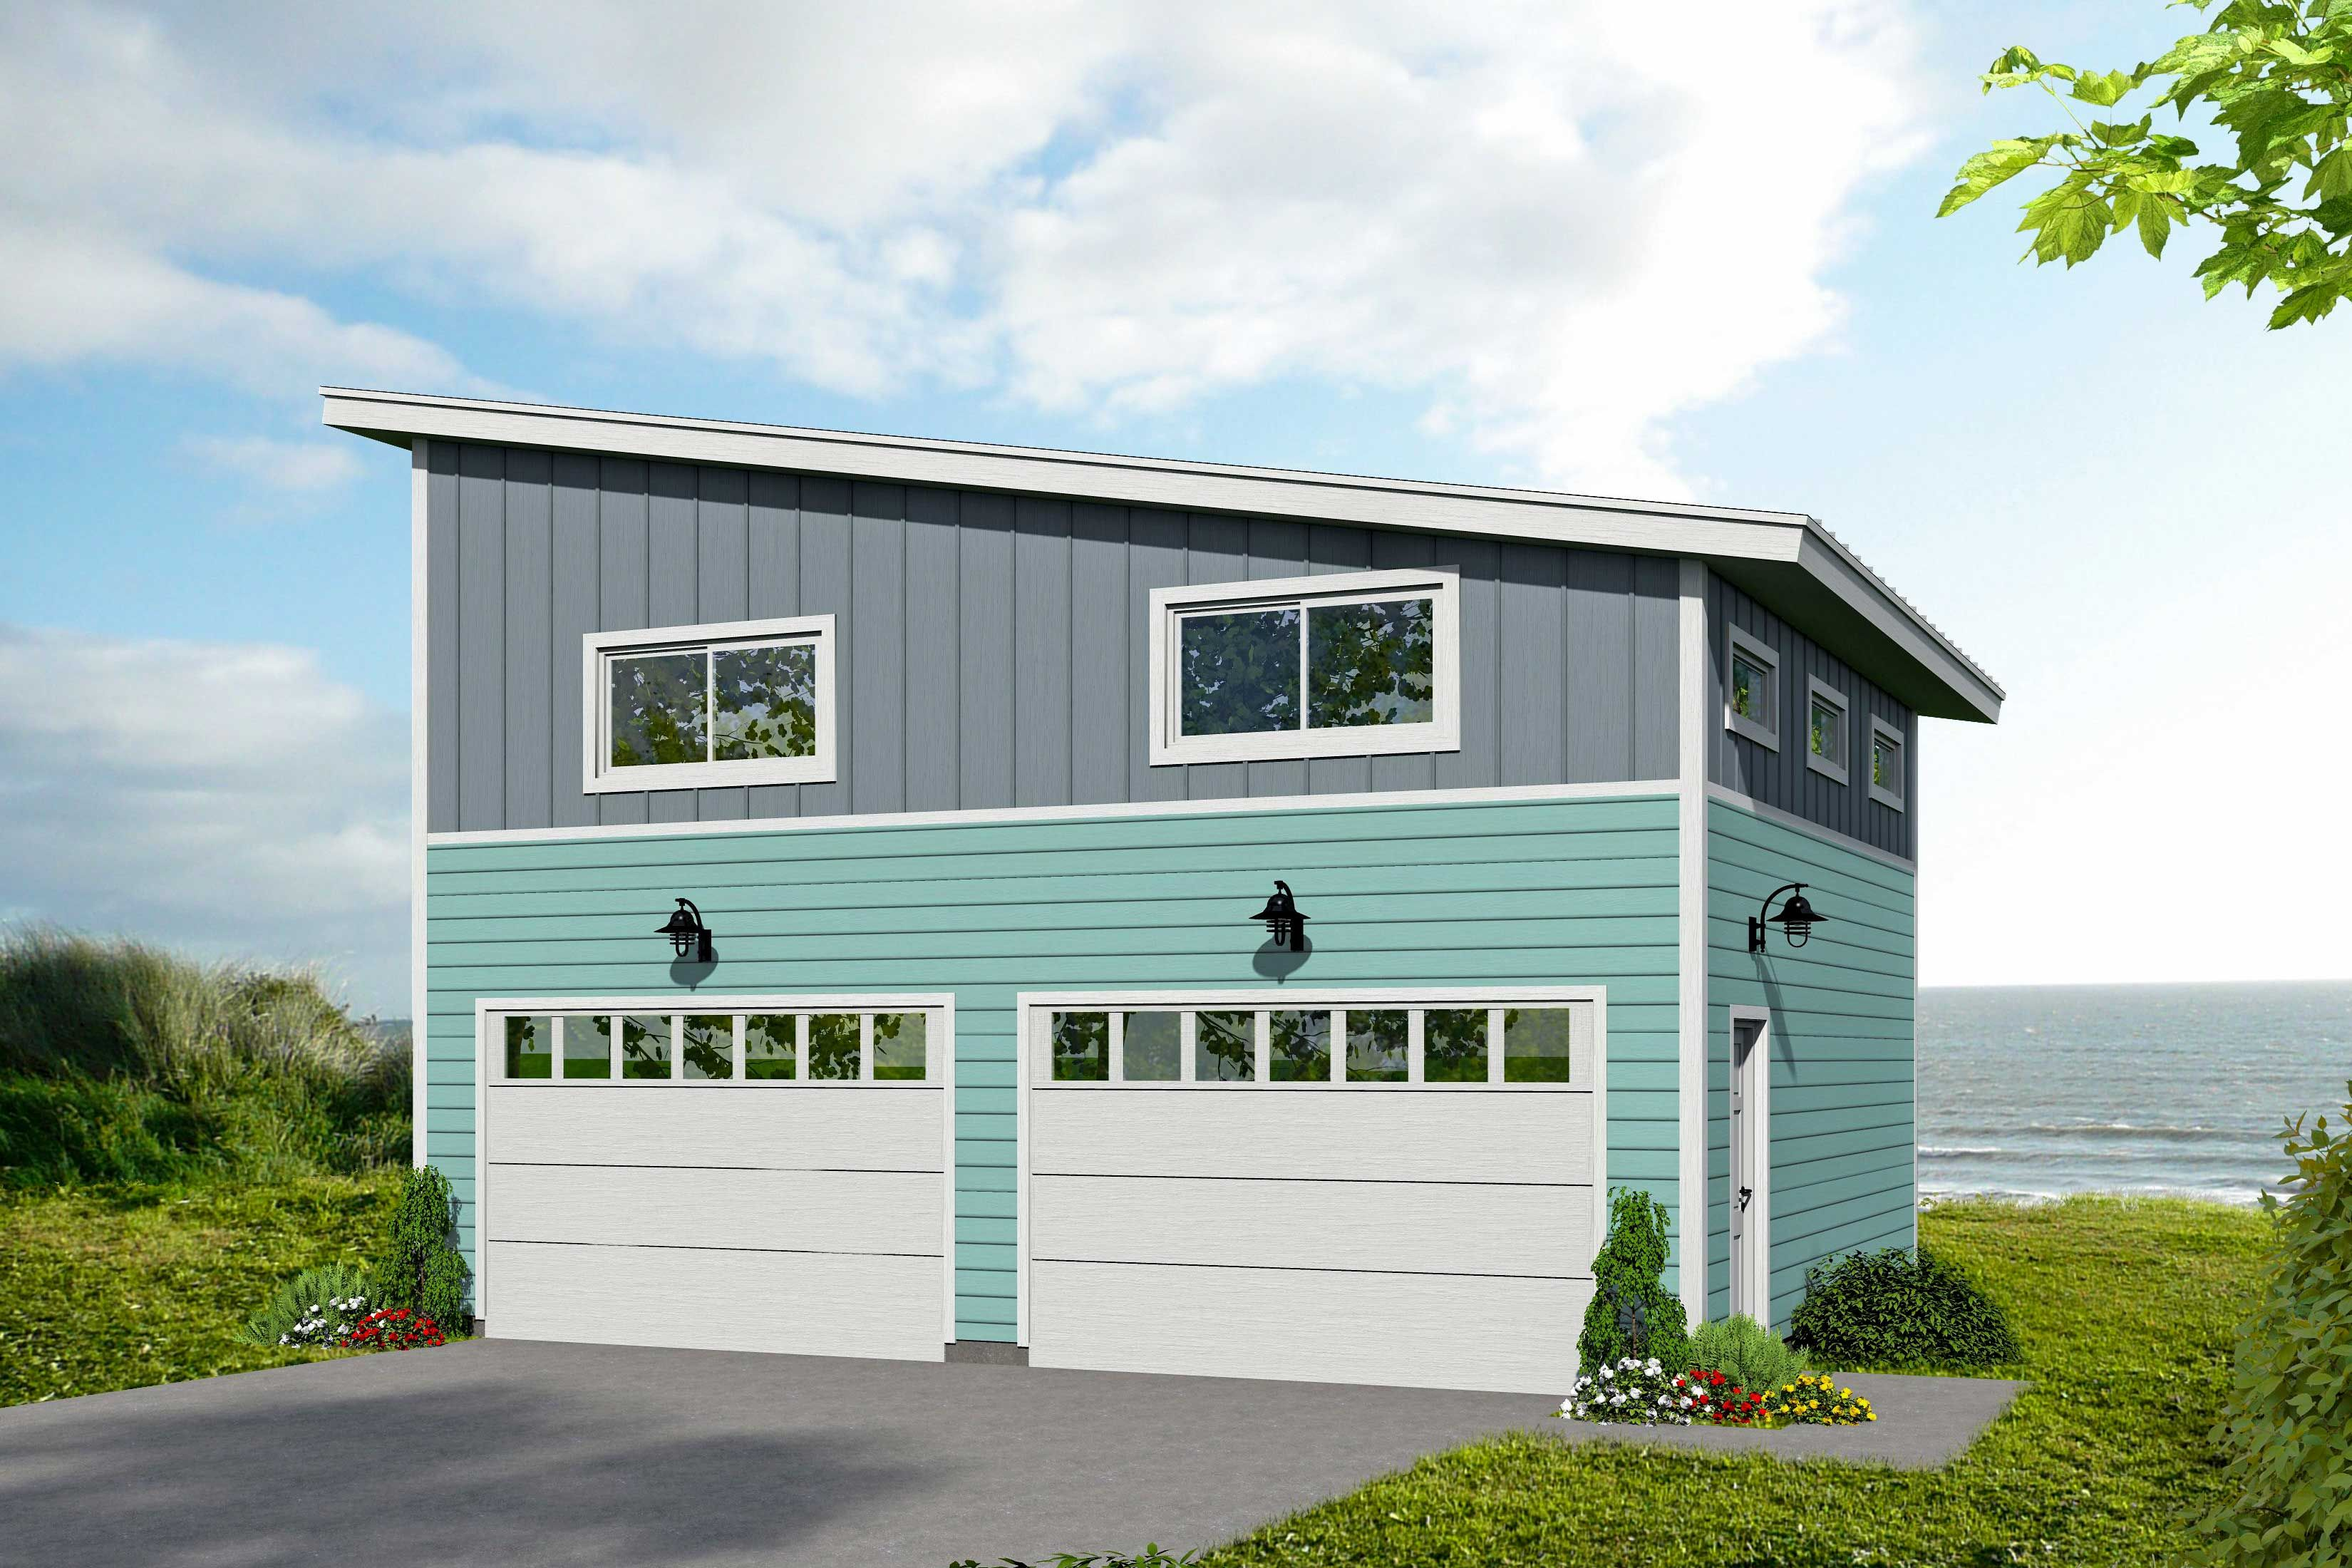 Plan 68554vr Modern Garage Plan With Upstairs Loft Space Garage Plans With Loft Modern Garage Garage Loft